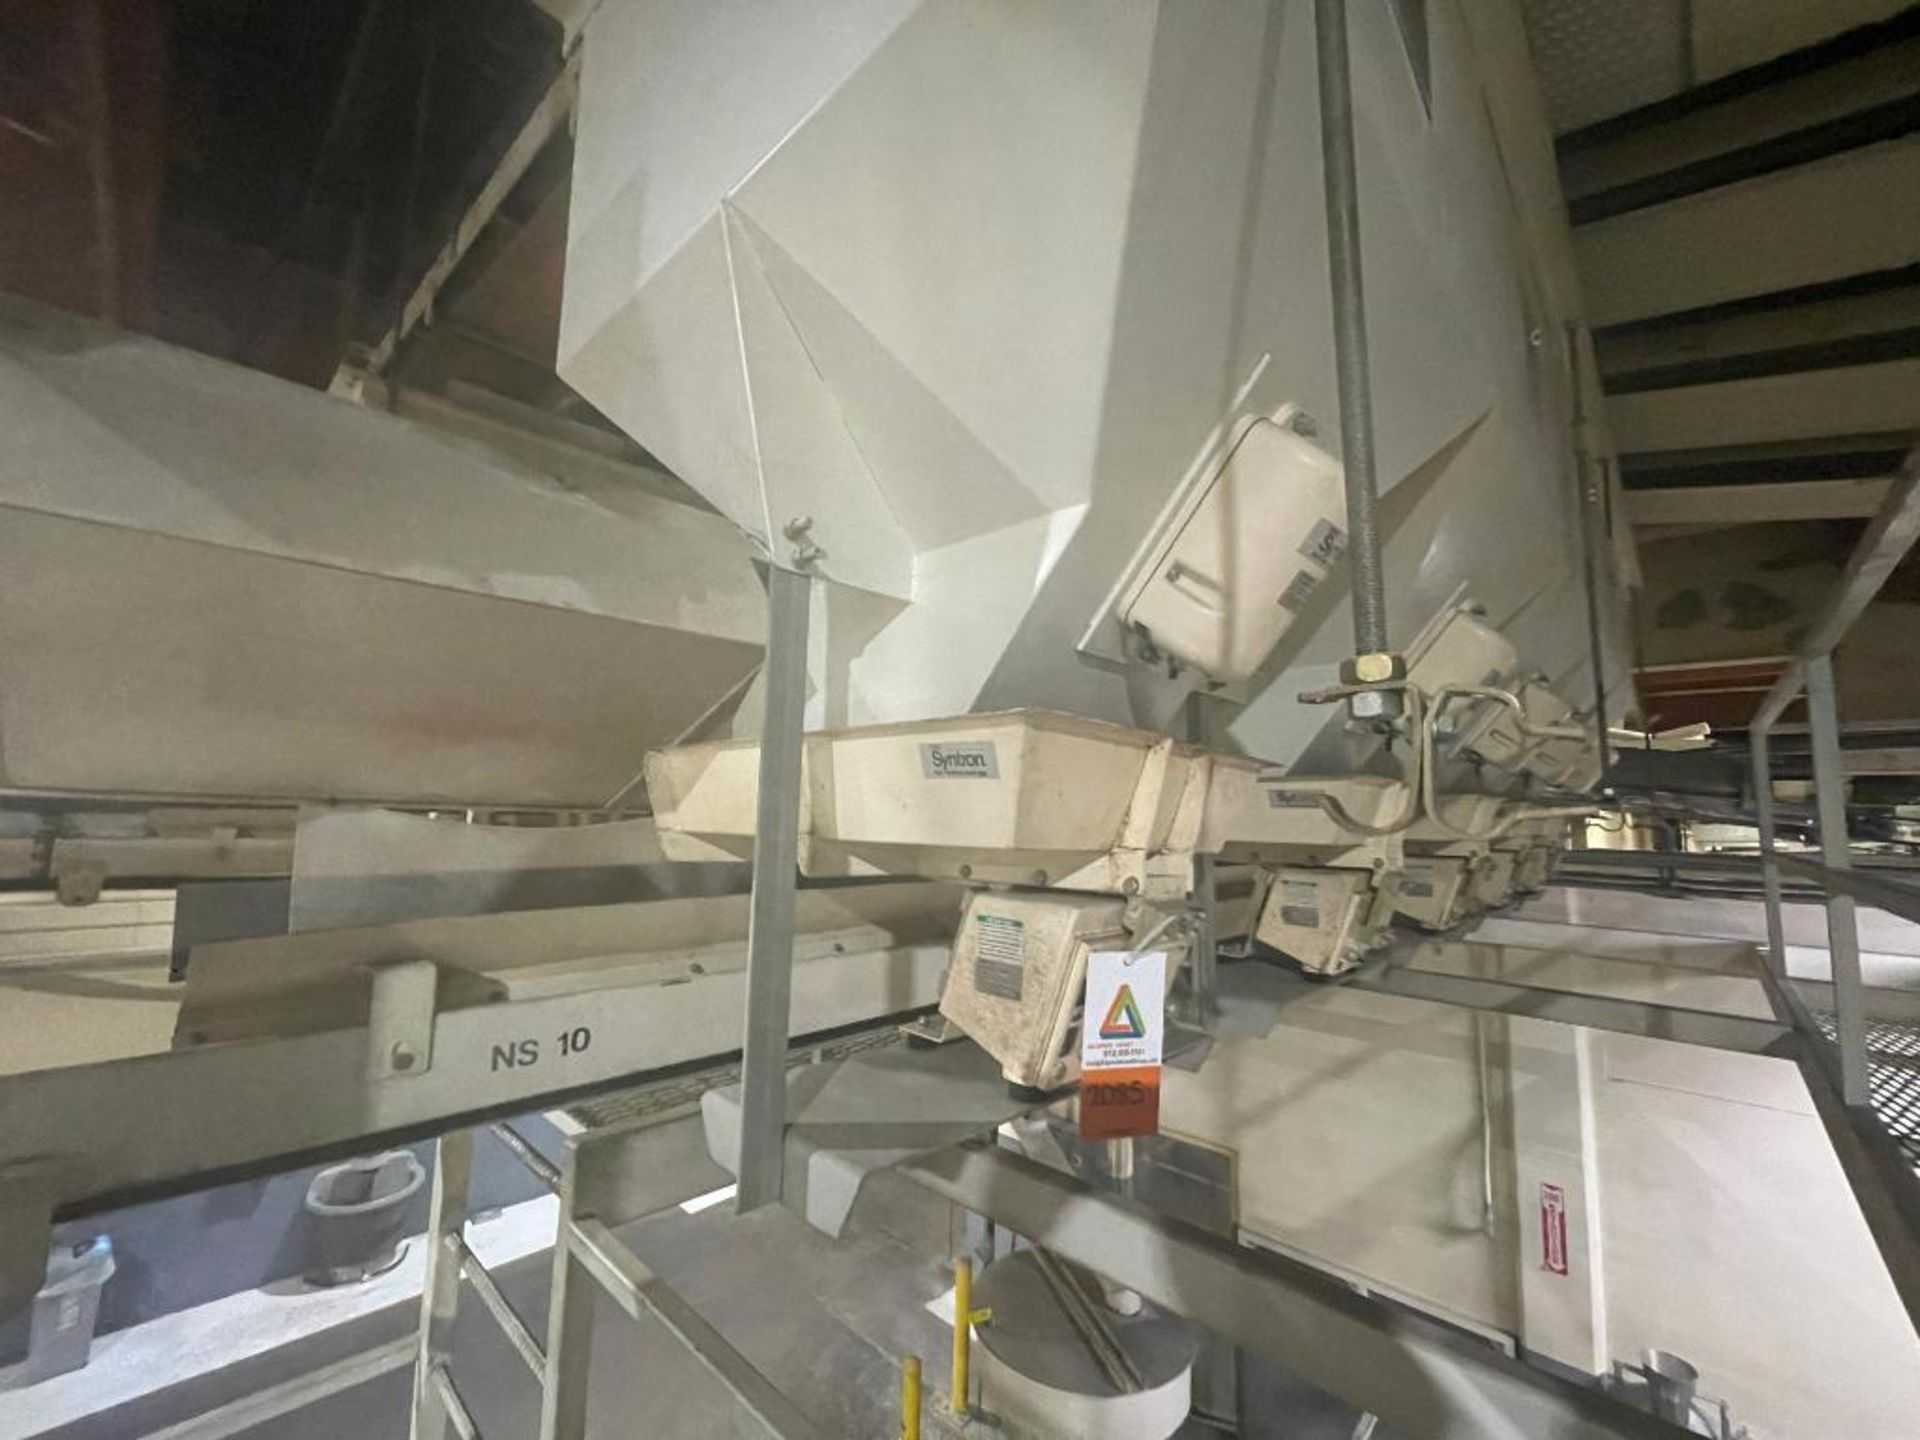 Aseeco 5-bin blending system with 5 Syntron vibratory feeders on bottom - Image 5 of 18